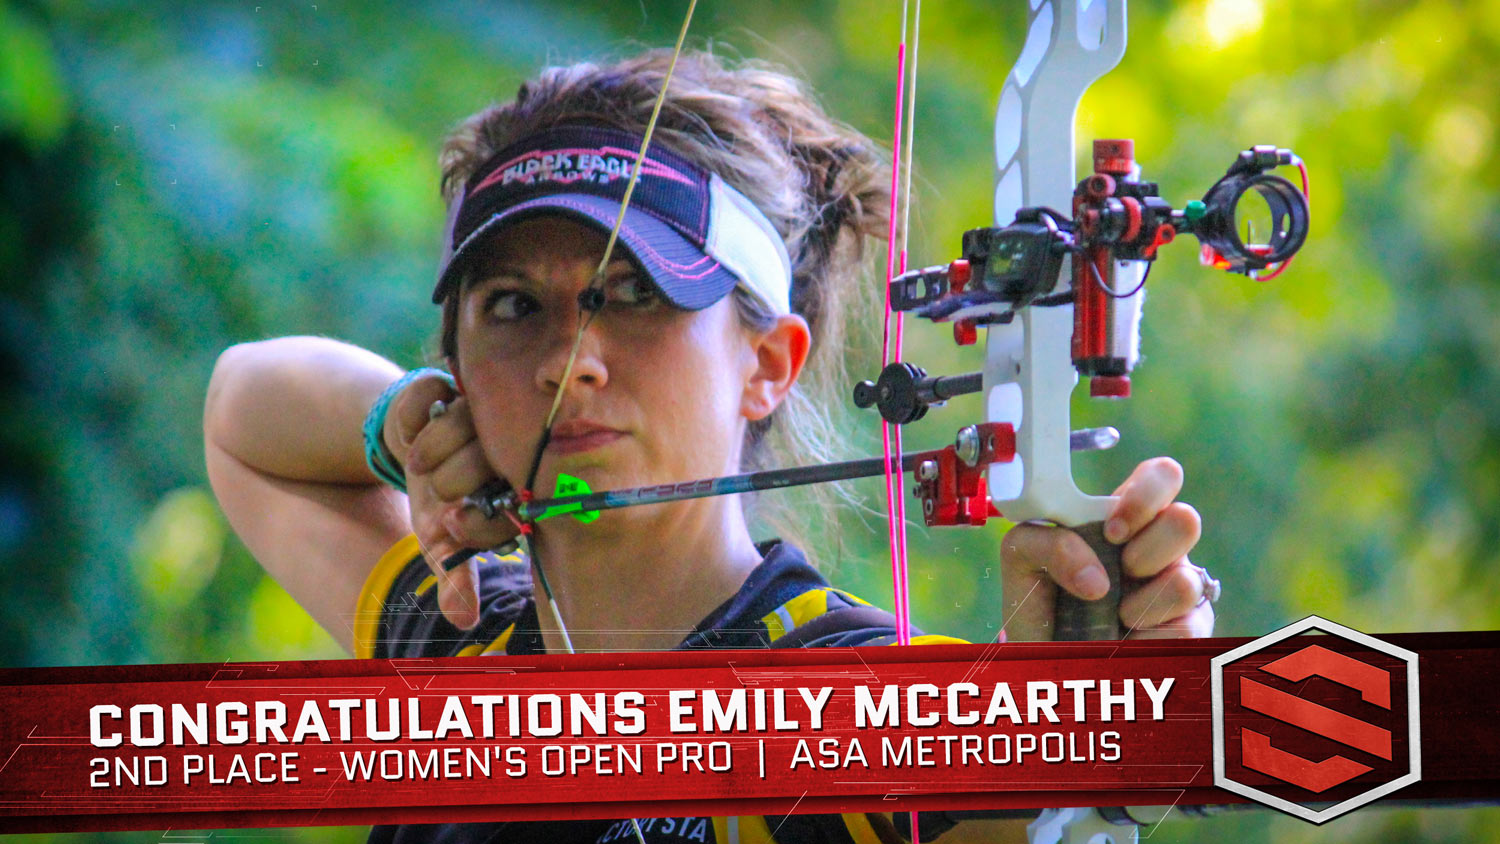 ASA Metropolis - Emily McCarthy Wins 2nd Place for Women's Open Pro using her Scott Archery Mini Advantage